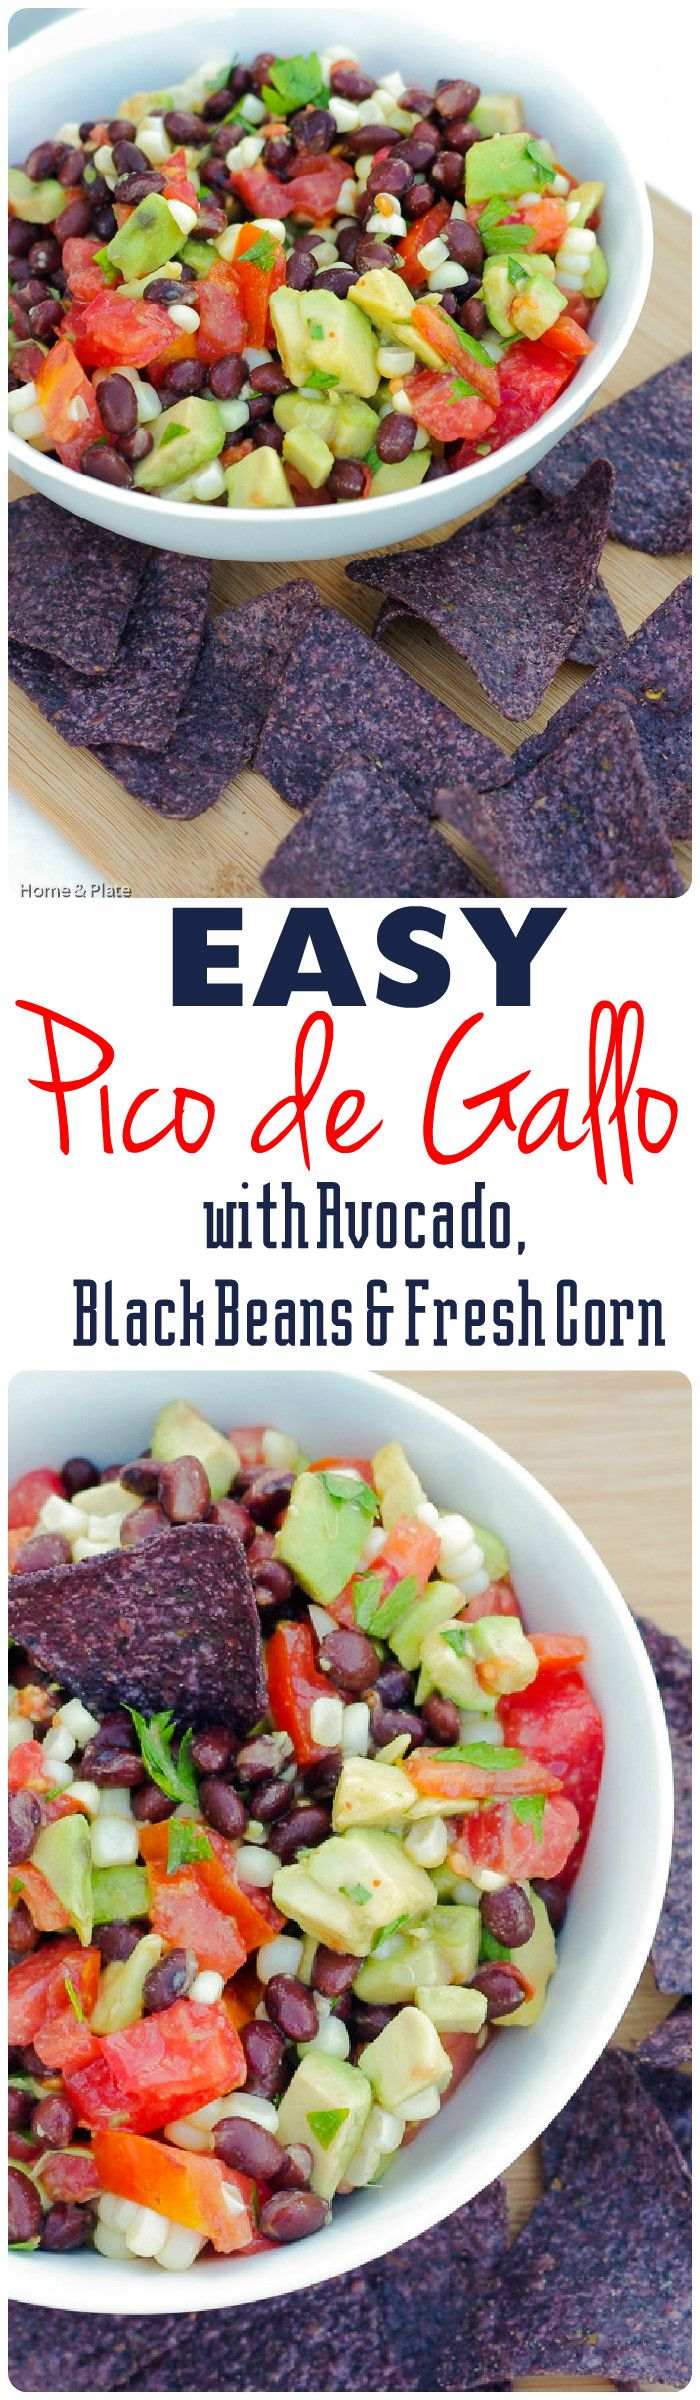 Easy Pico de Gallo with Avocado, Black Beans and Fresh Corn | Home & Plate | www.homeandplate.com |